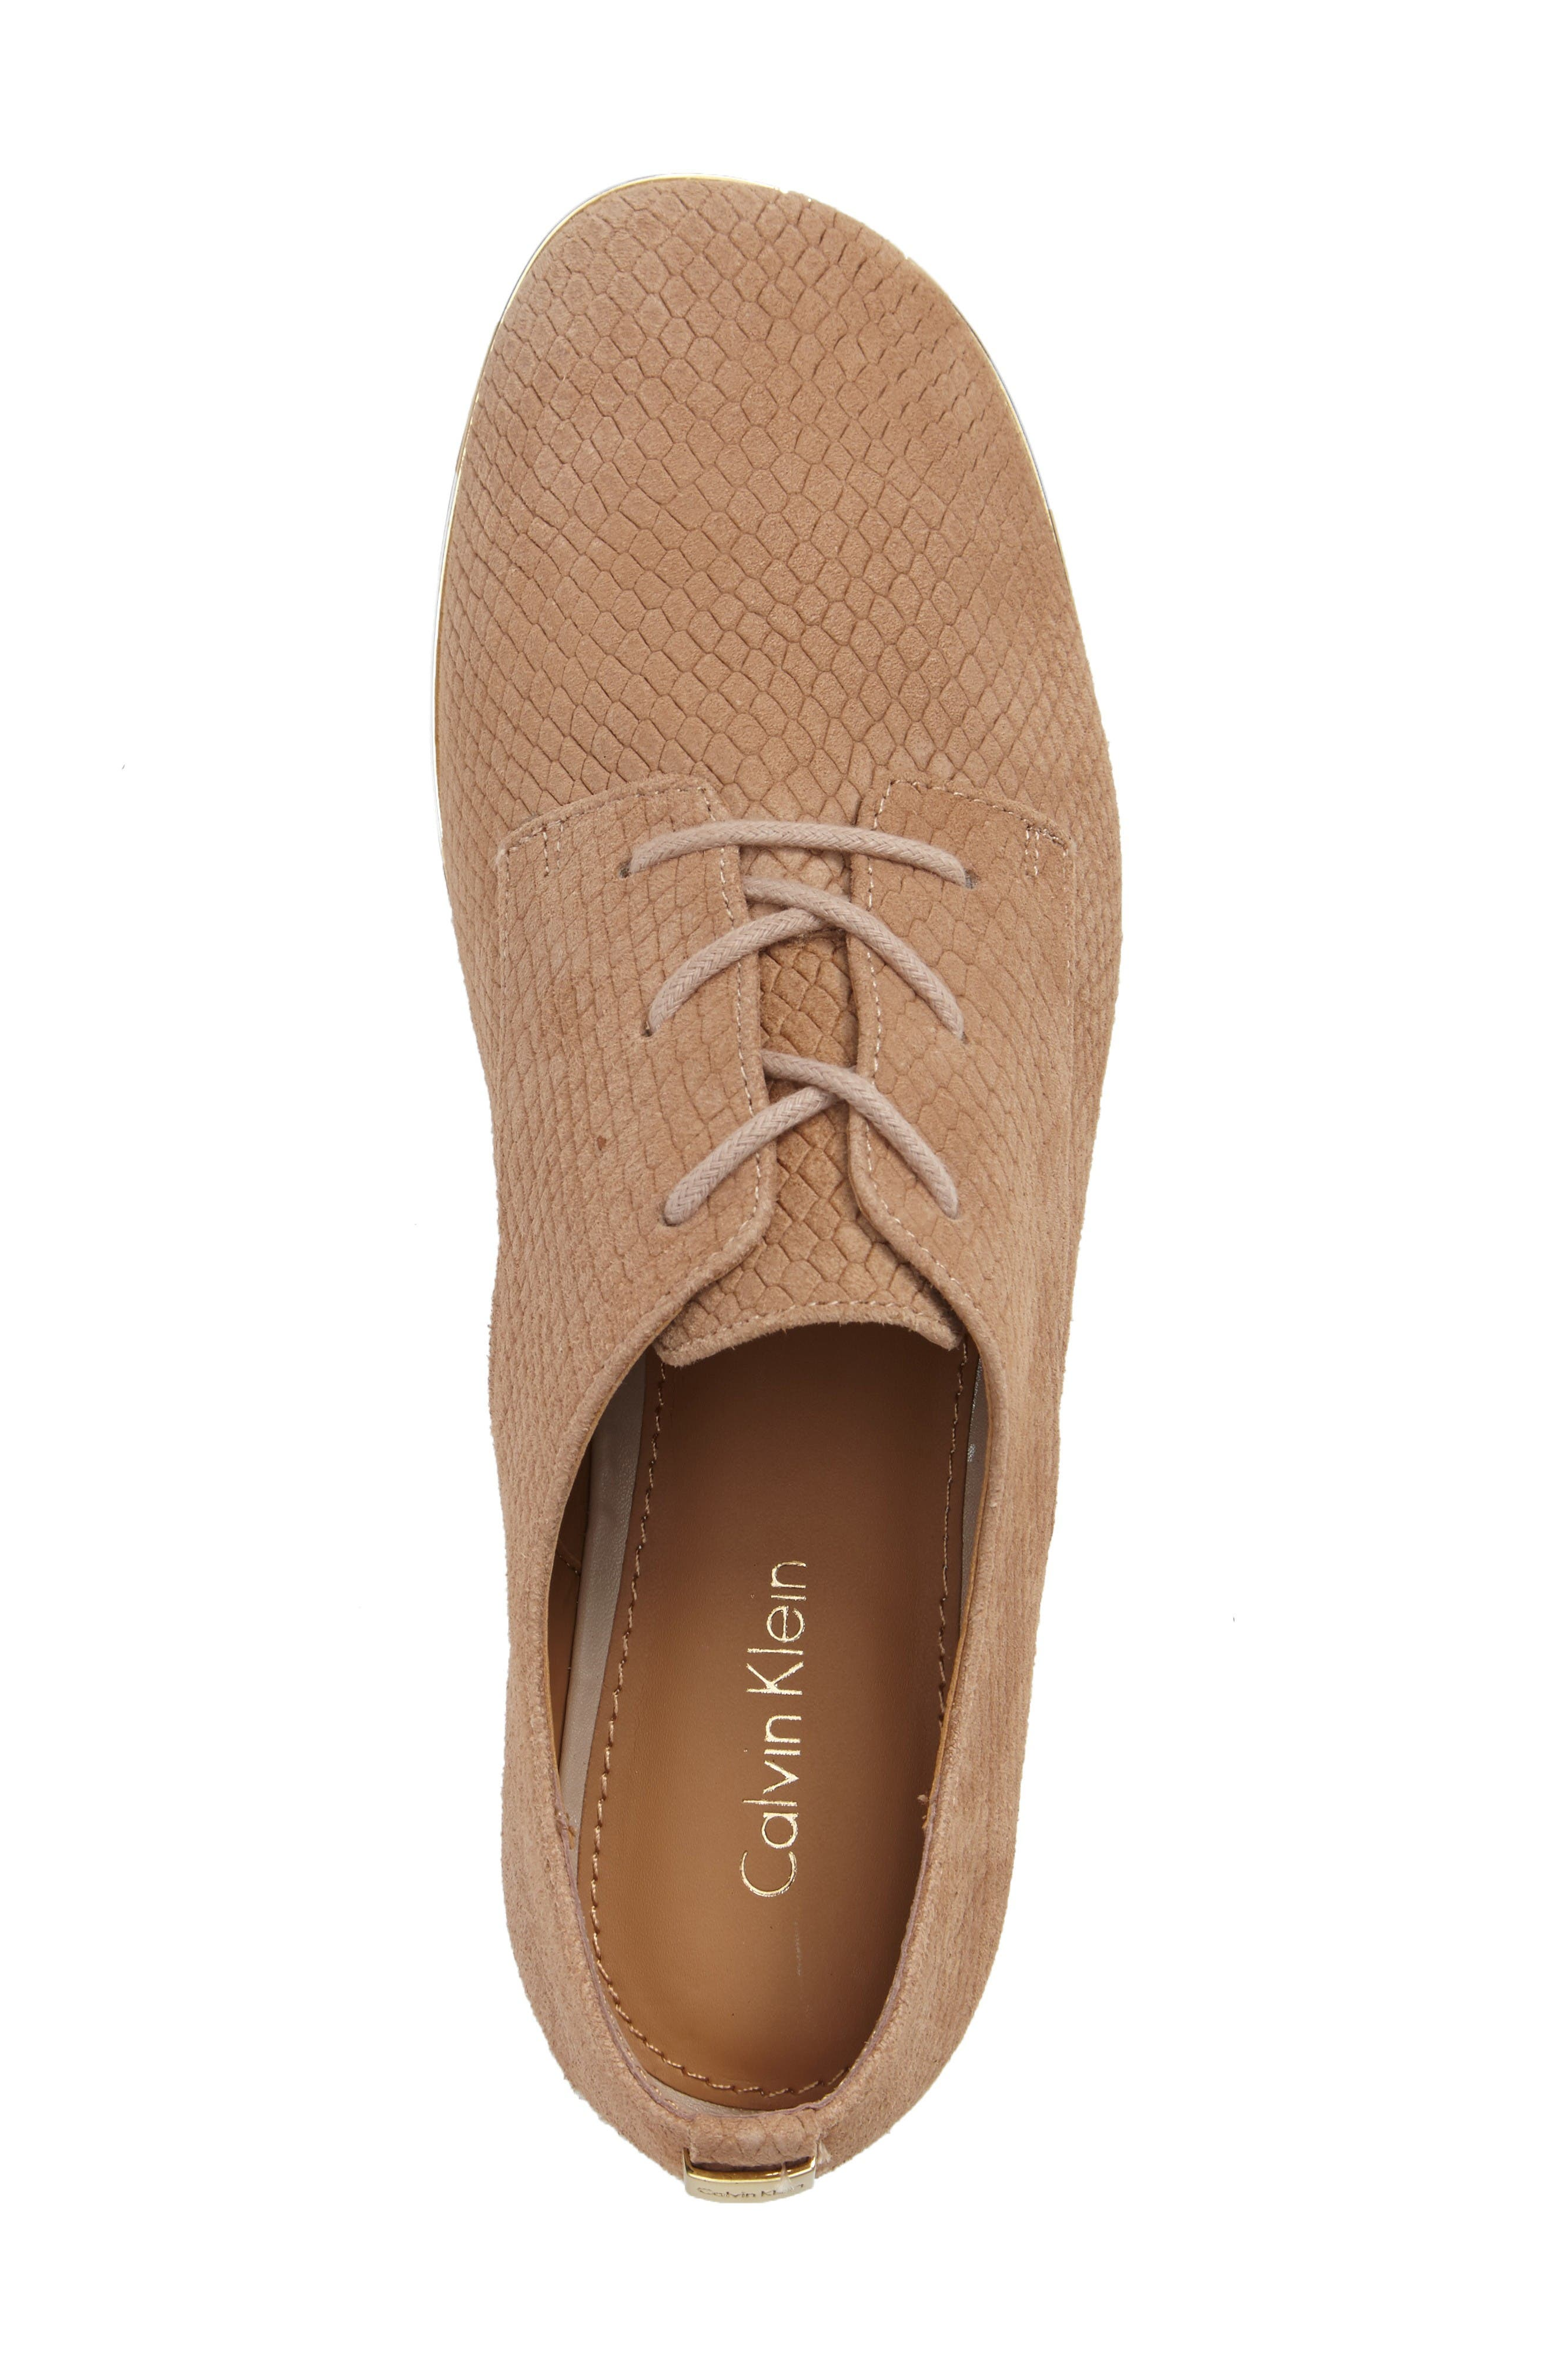 Cory Textured Oxford,                             Alternate thumbnail 3, color,                             Cocoon/ Warm Gold Nubuck